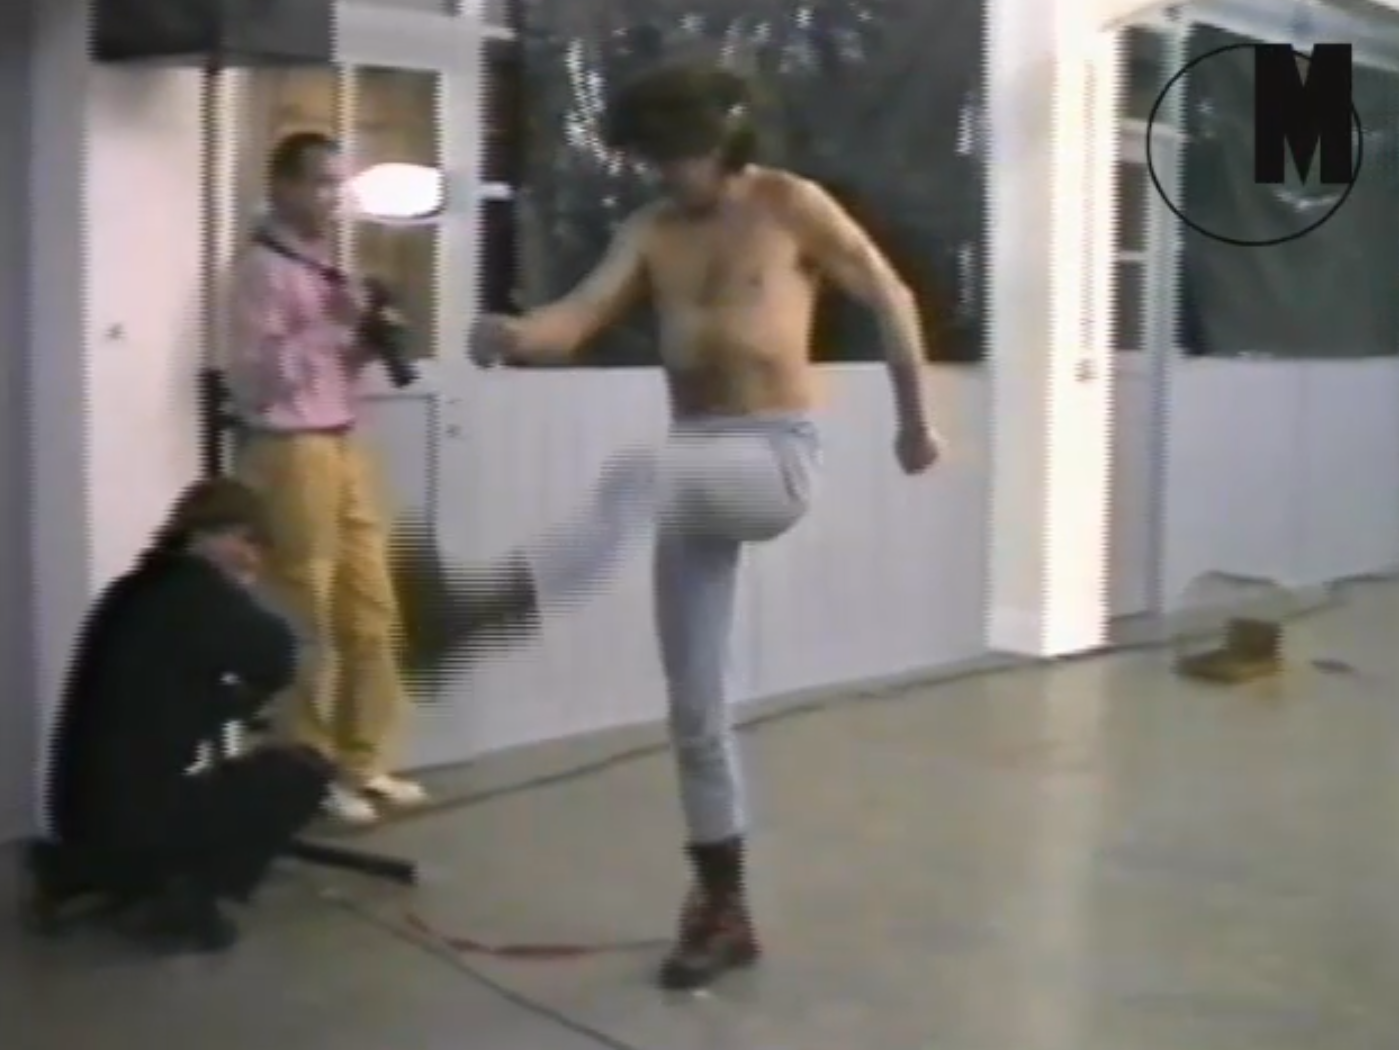 Zbigniew Warpechowski, 'Marsz' [March], stillframe from a video registration of a performance, Stuttgart 1984, courtesy of Artists' Archives of The Museum of Modern Art in Warsaw.